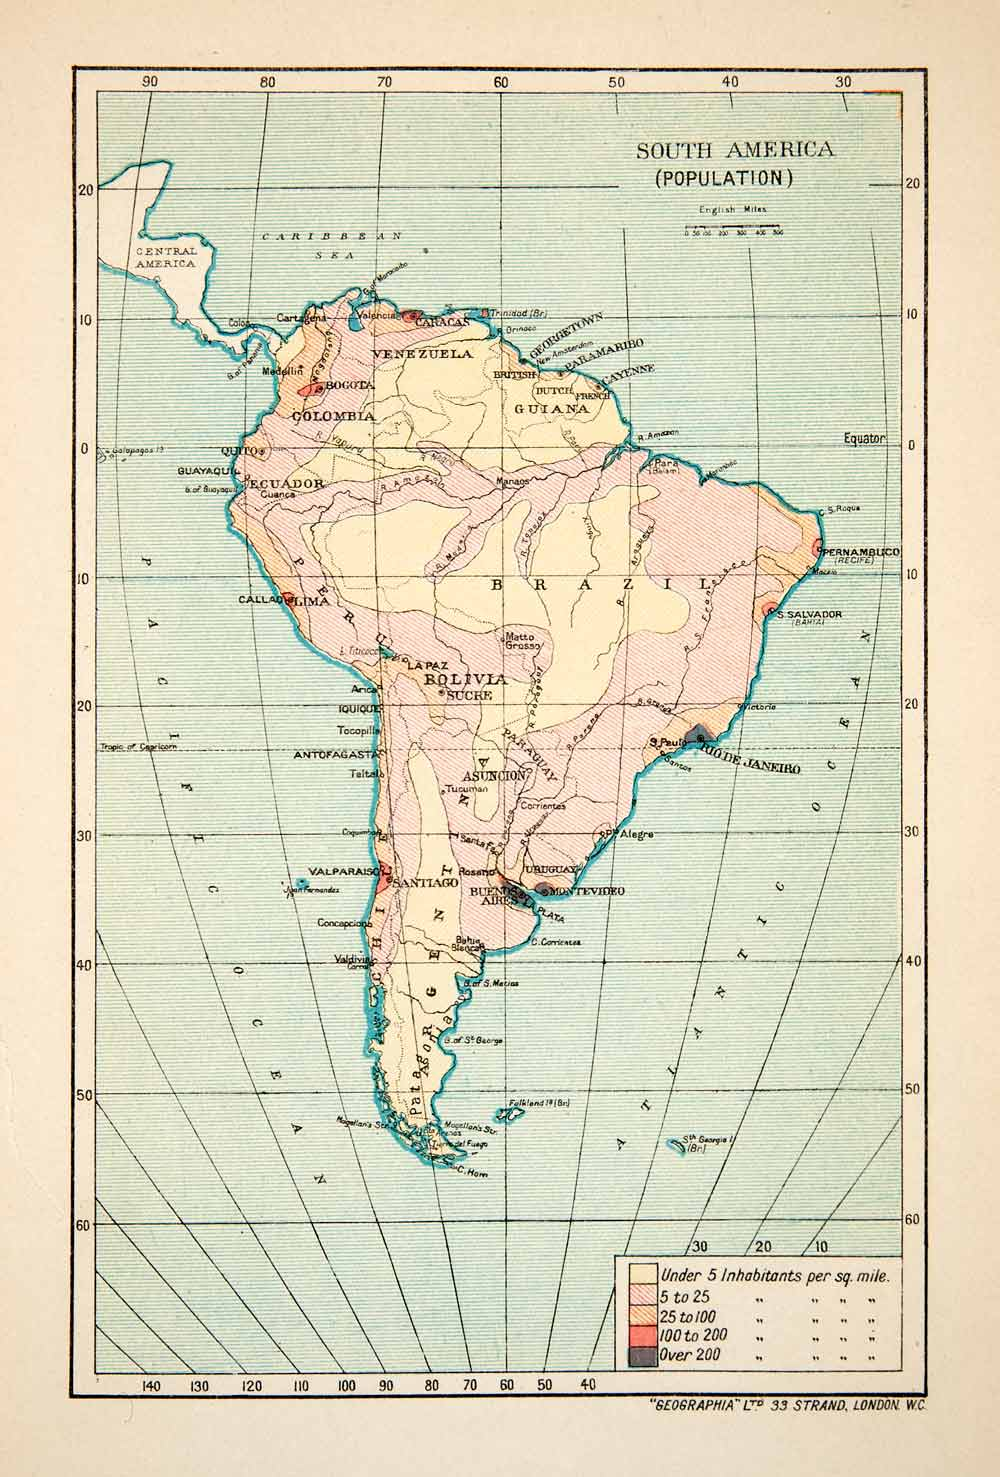 Map Of America By Population Density.1913 Lithograph Map Population Density South America Inhabit Continent Xgvb7